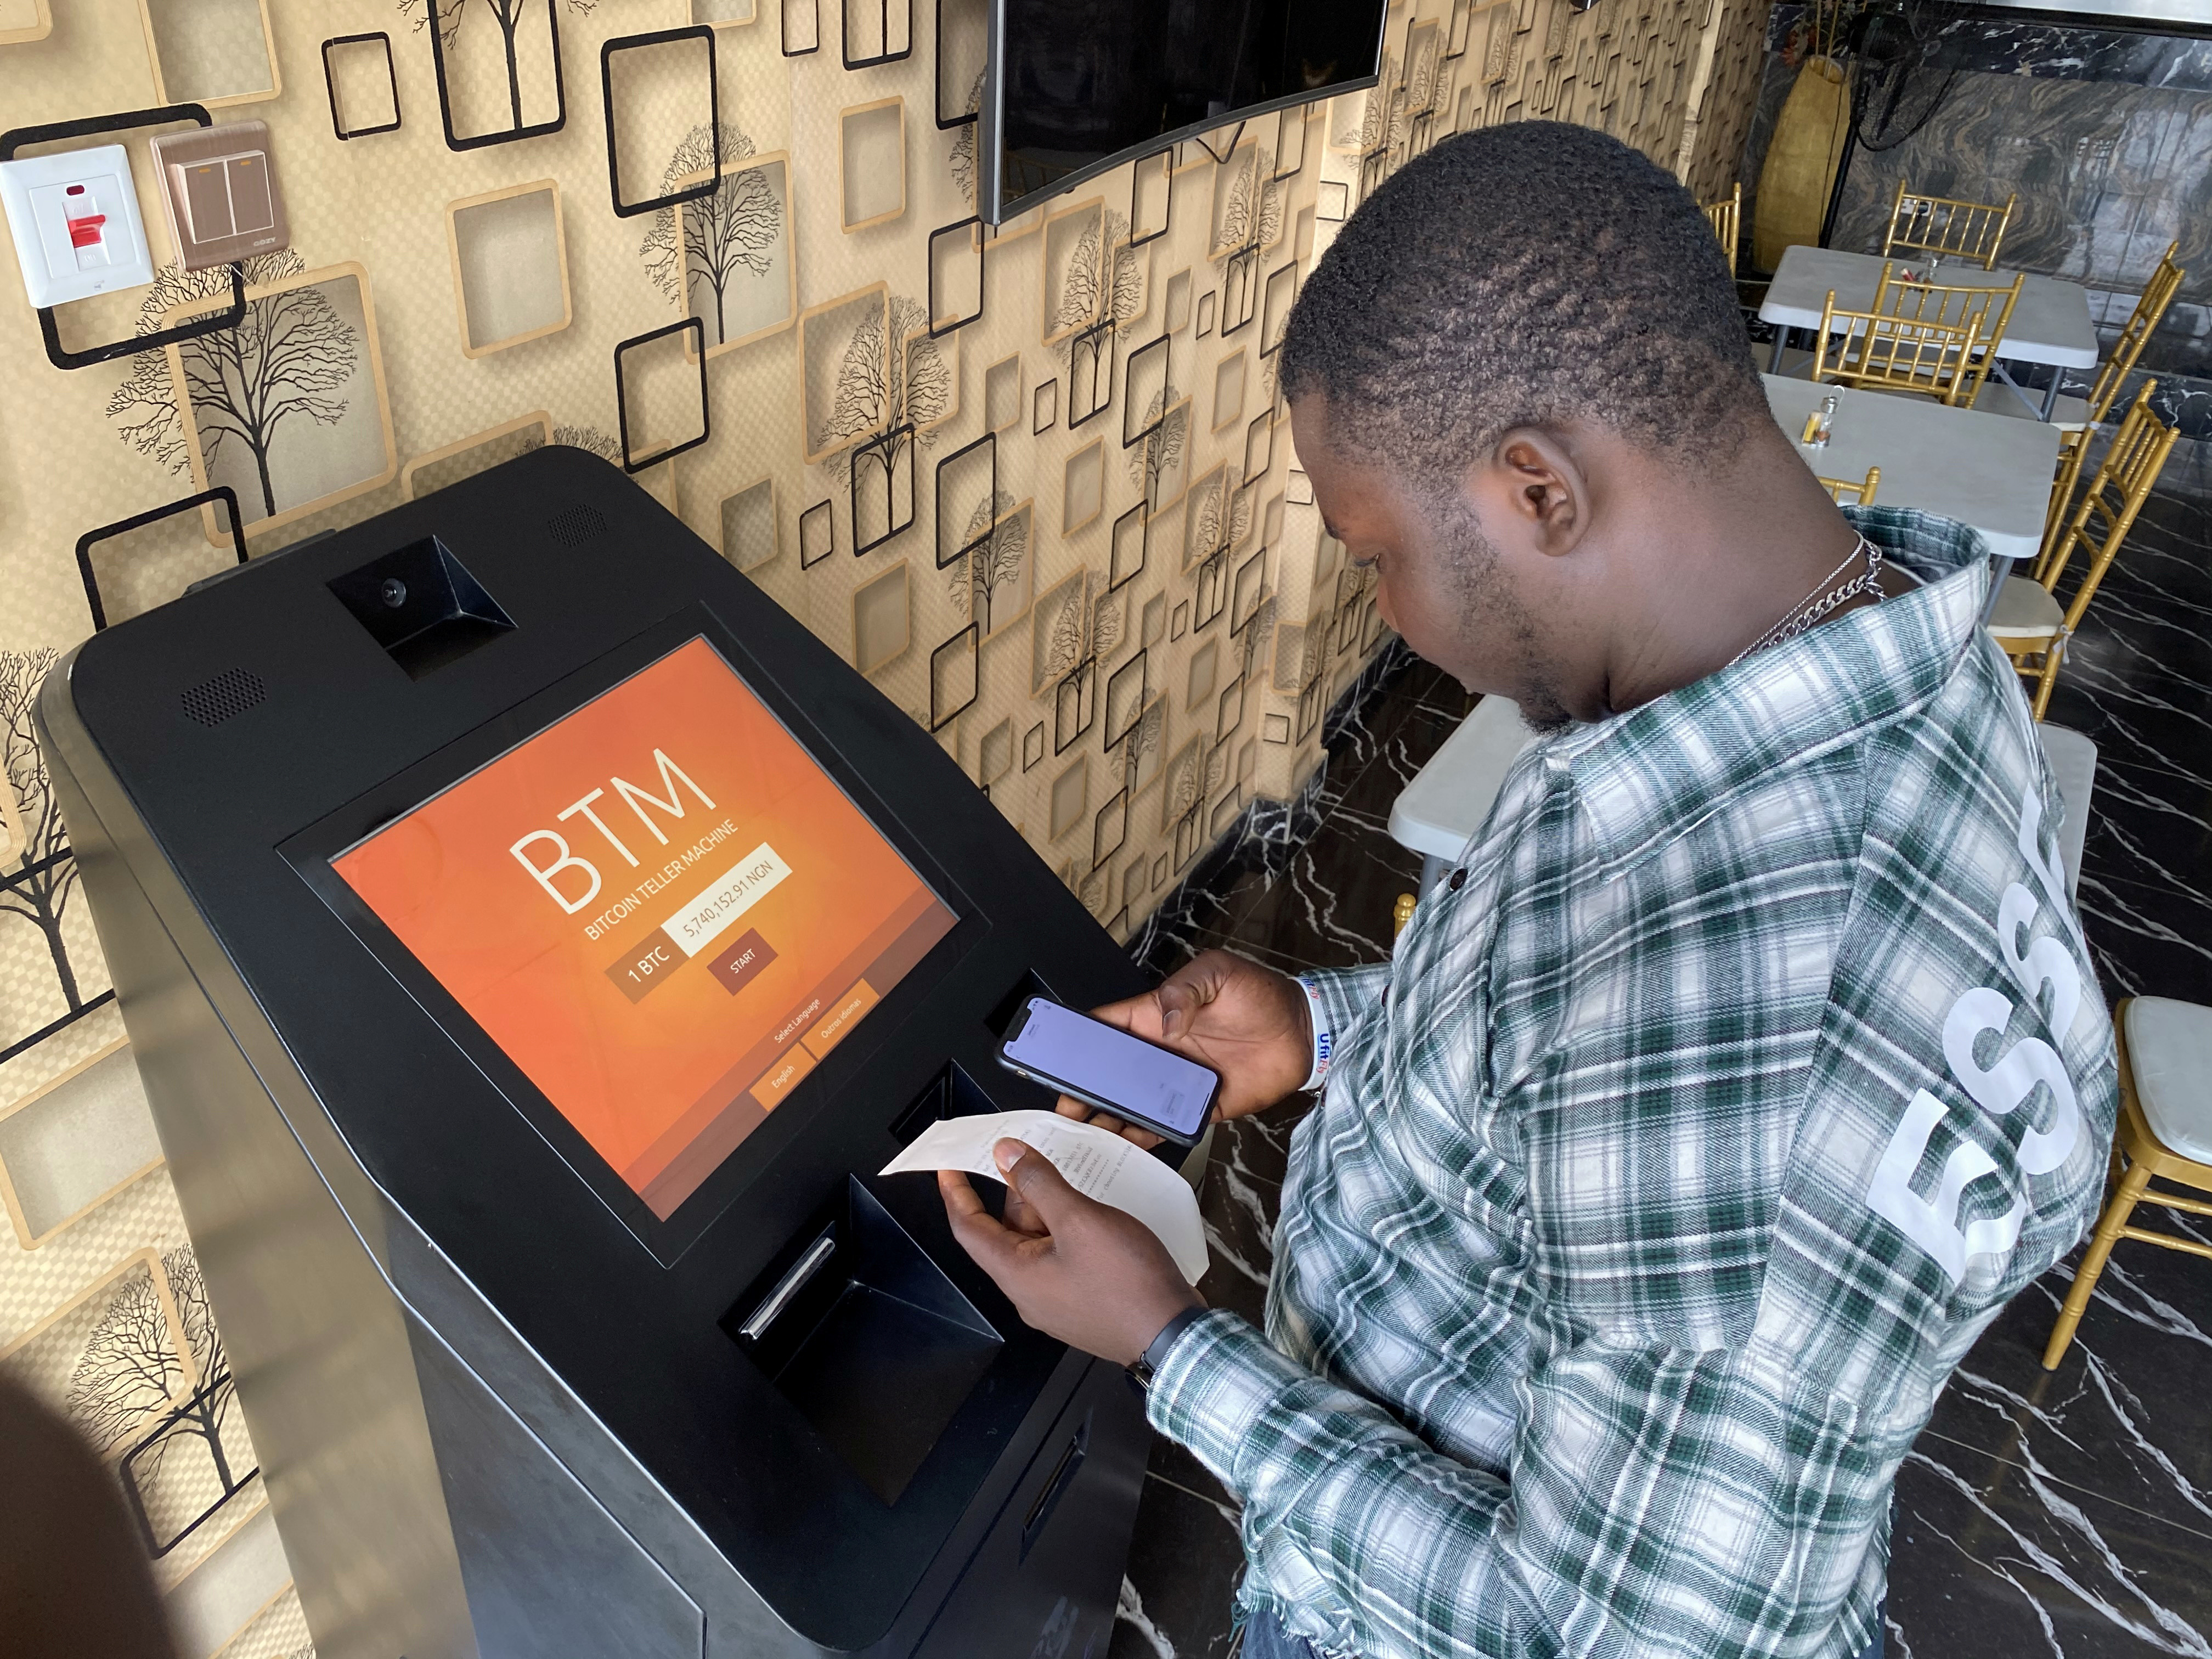 A bitcoin user checks the receipts after buying bitcoins with naira on Bitcoin Teller Machine in Lagos, Nigeria September 1, 2020. Picture taken September 1, 2020.